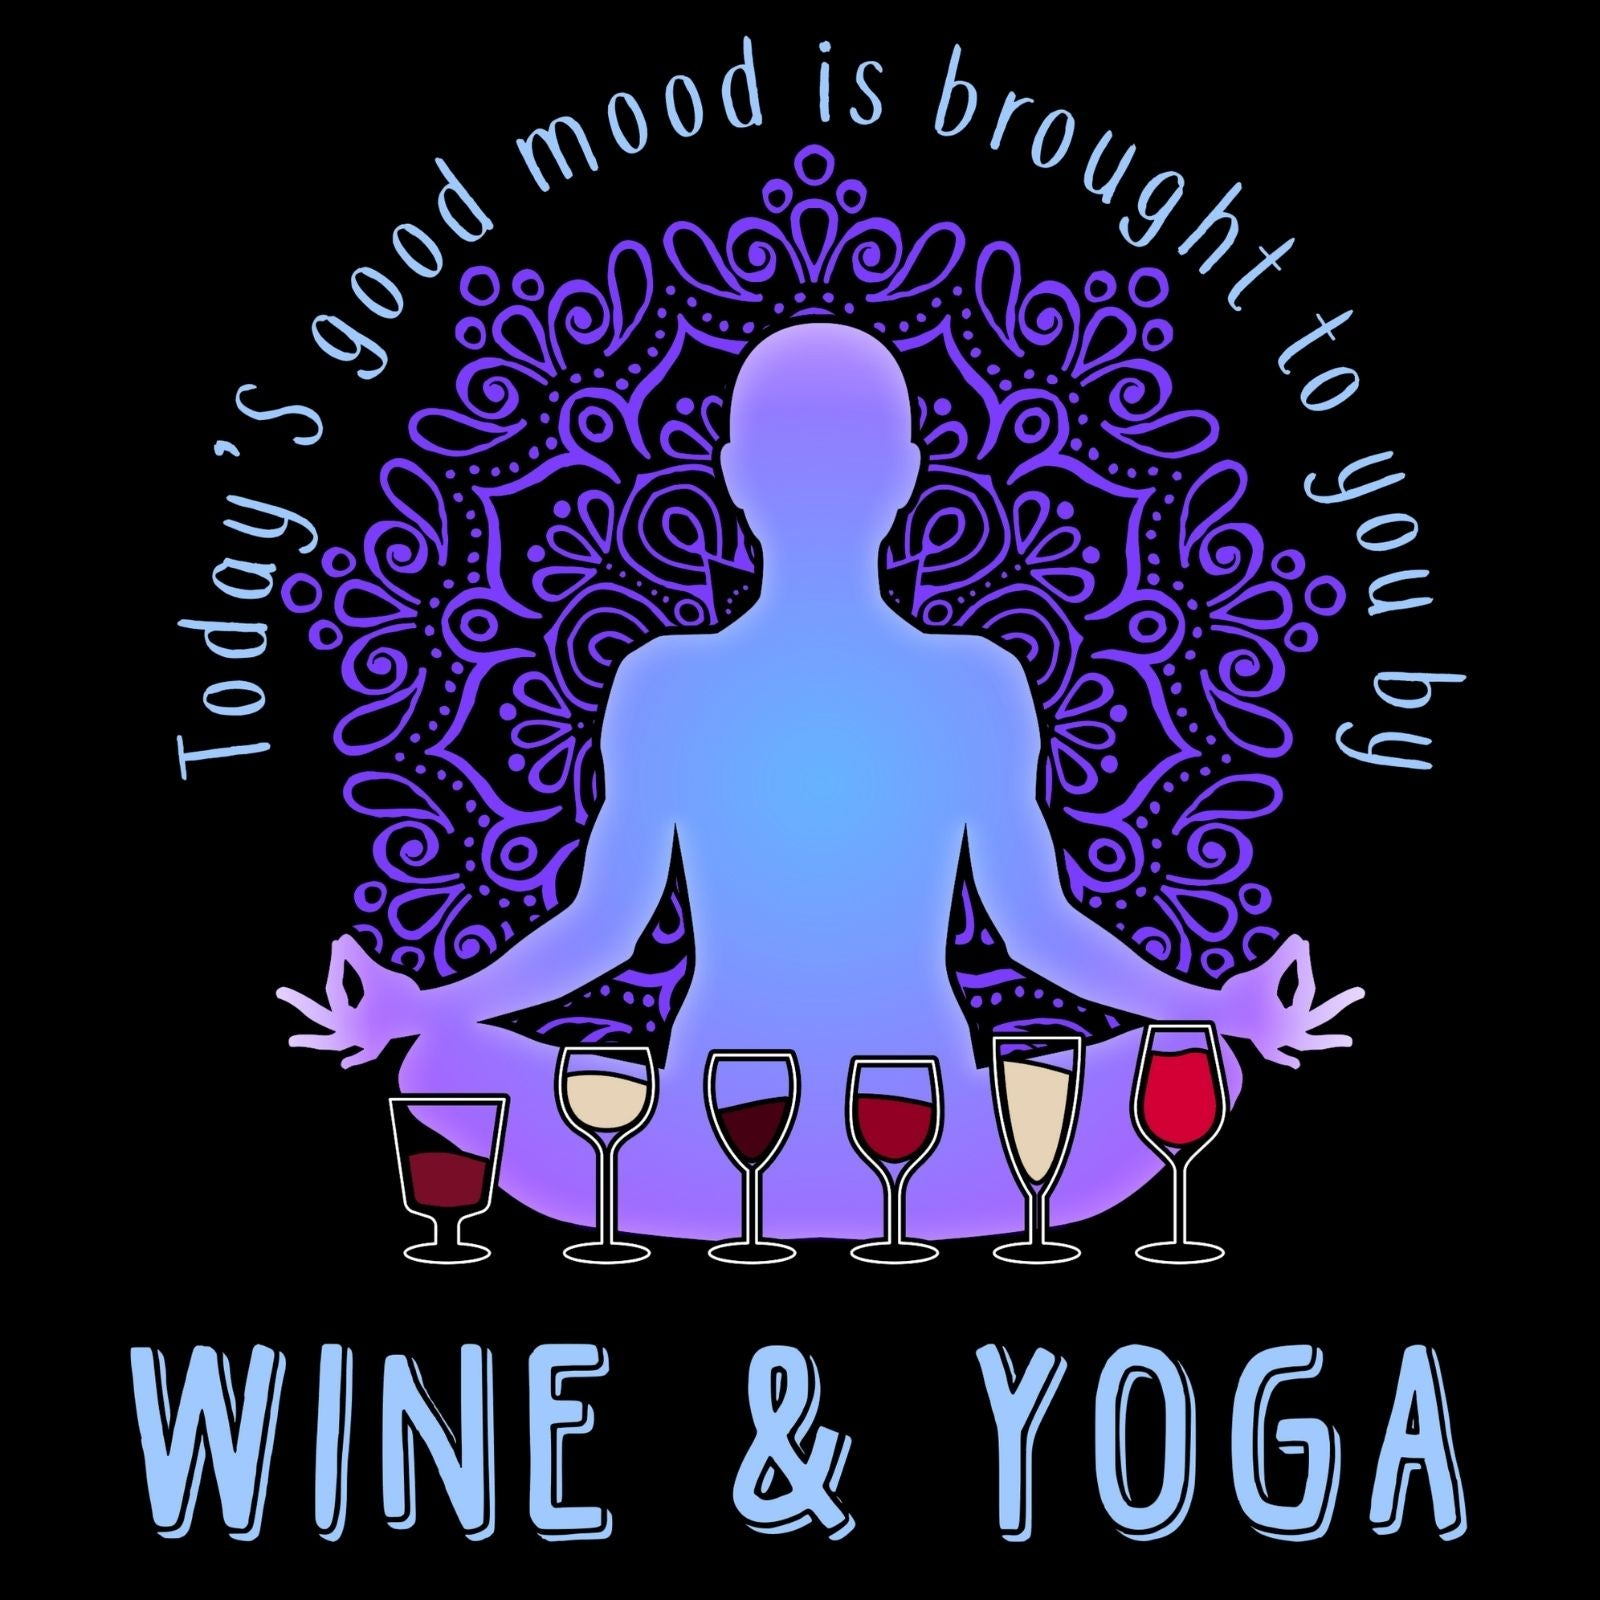 Todays Good Mood is Brought To You By Wine And Yoga - Bastard Graphics